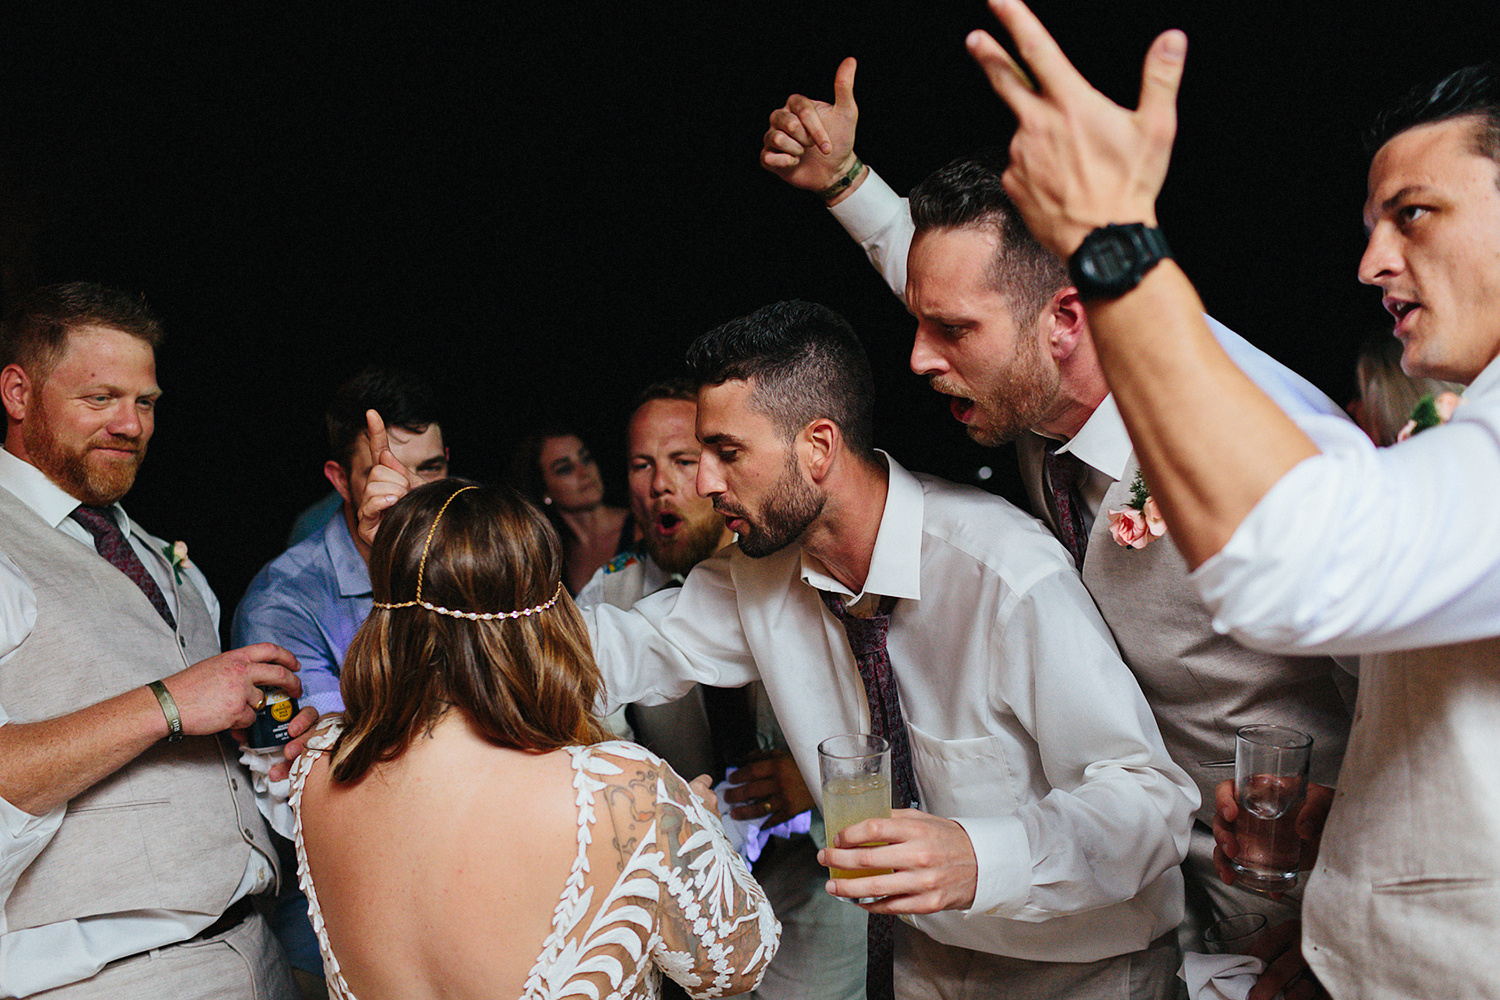 cabo-san-lucas-junebug-weddings-green-wedding-shoes-toronto-wedding-photographer-3b-photography-ventanas-private-club-mexico-reception-night-real-moments-party-dancing-good-times-celebrate-rapping.jpg